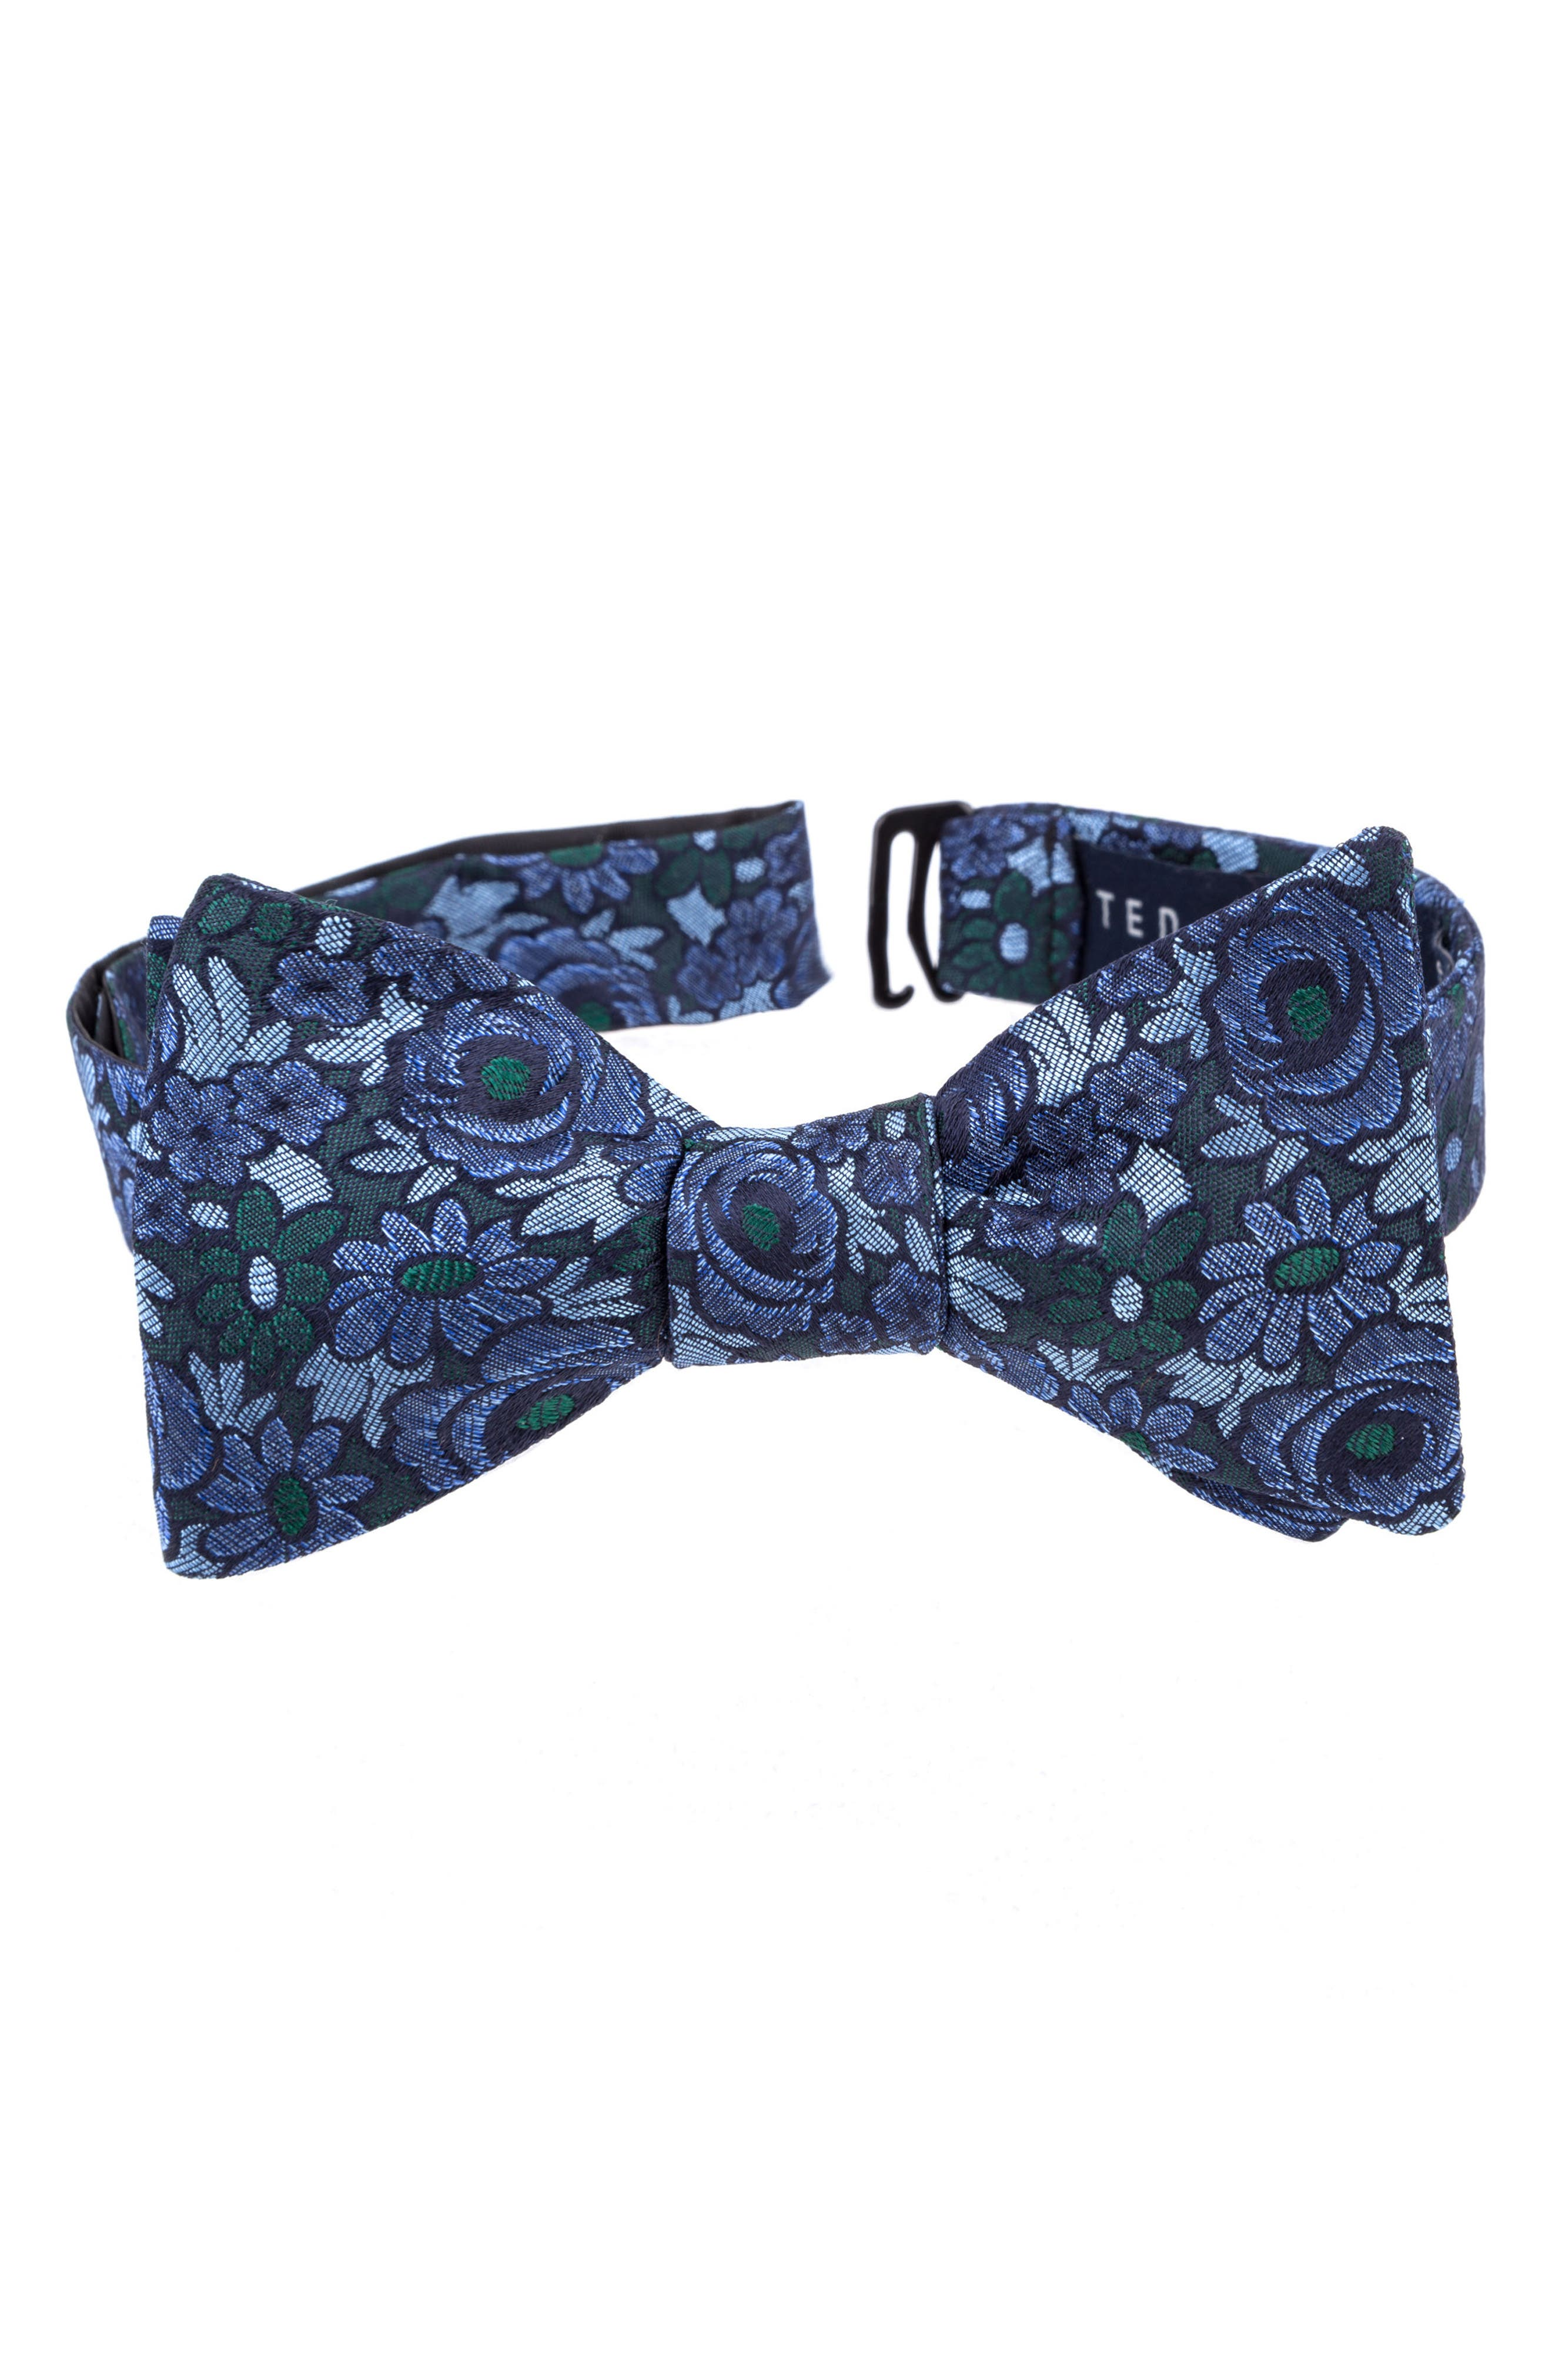 Alternate Image 1 Selected - Ted Baker London Botanical Silk Bow Tie